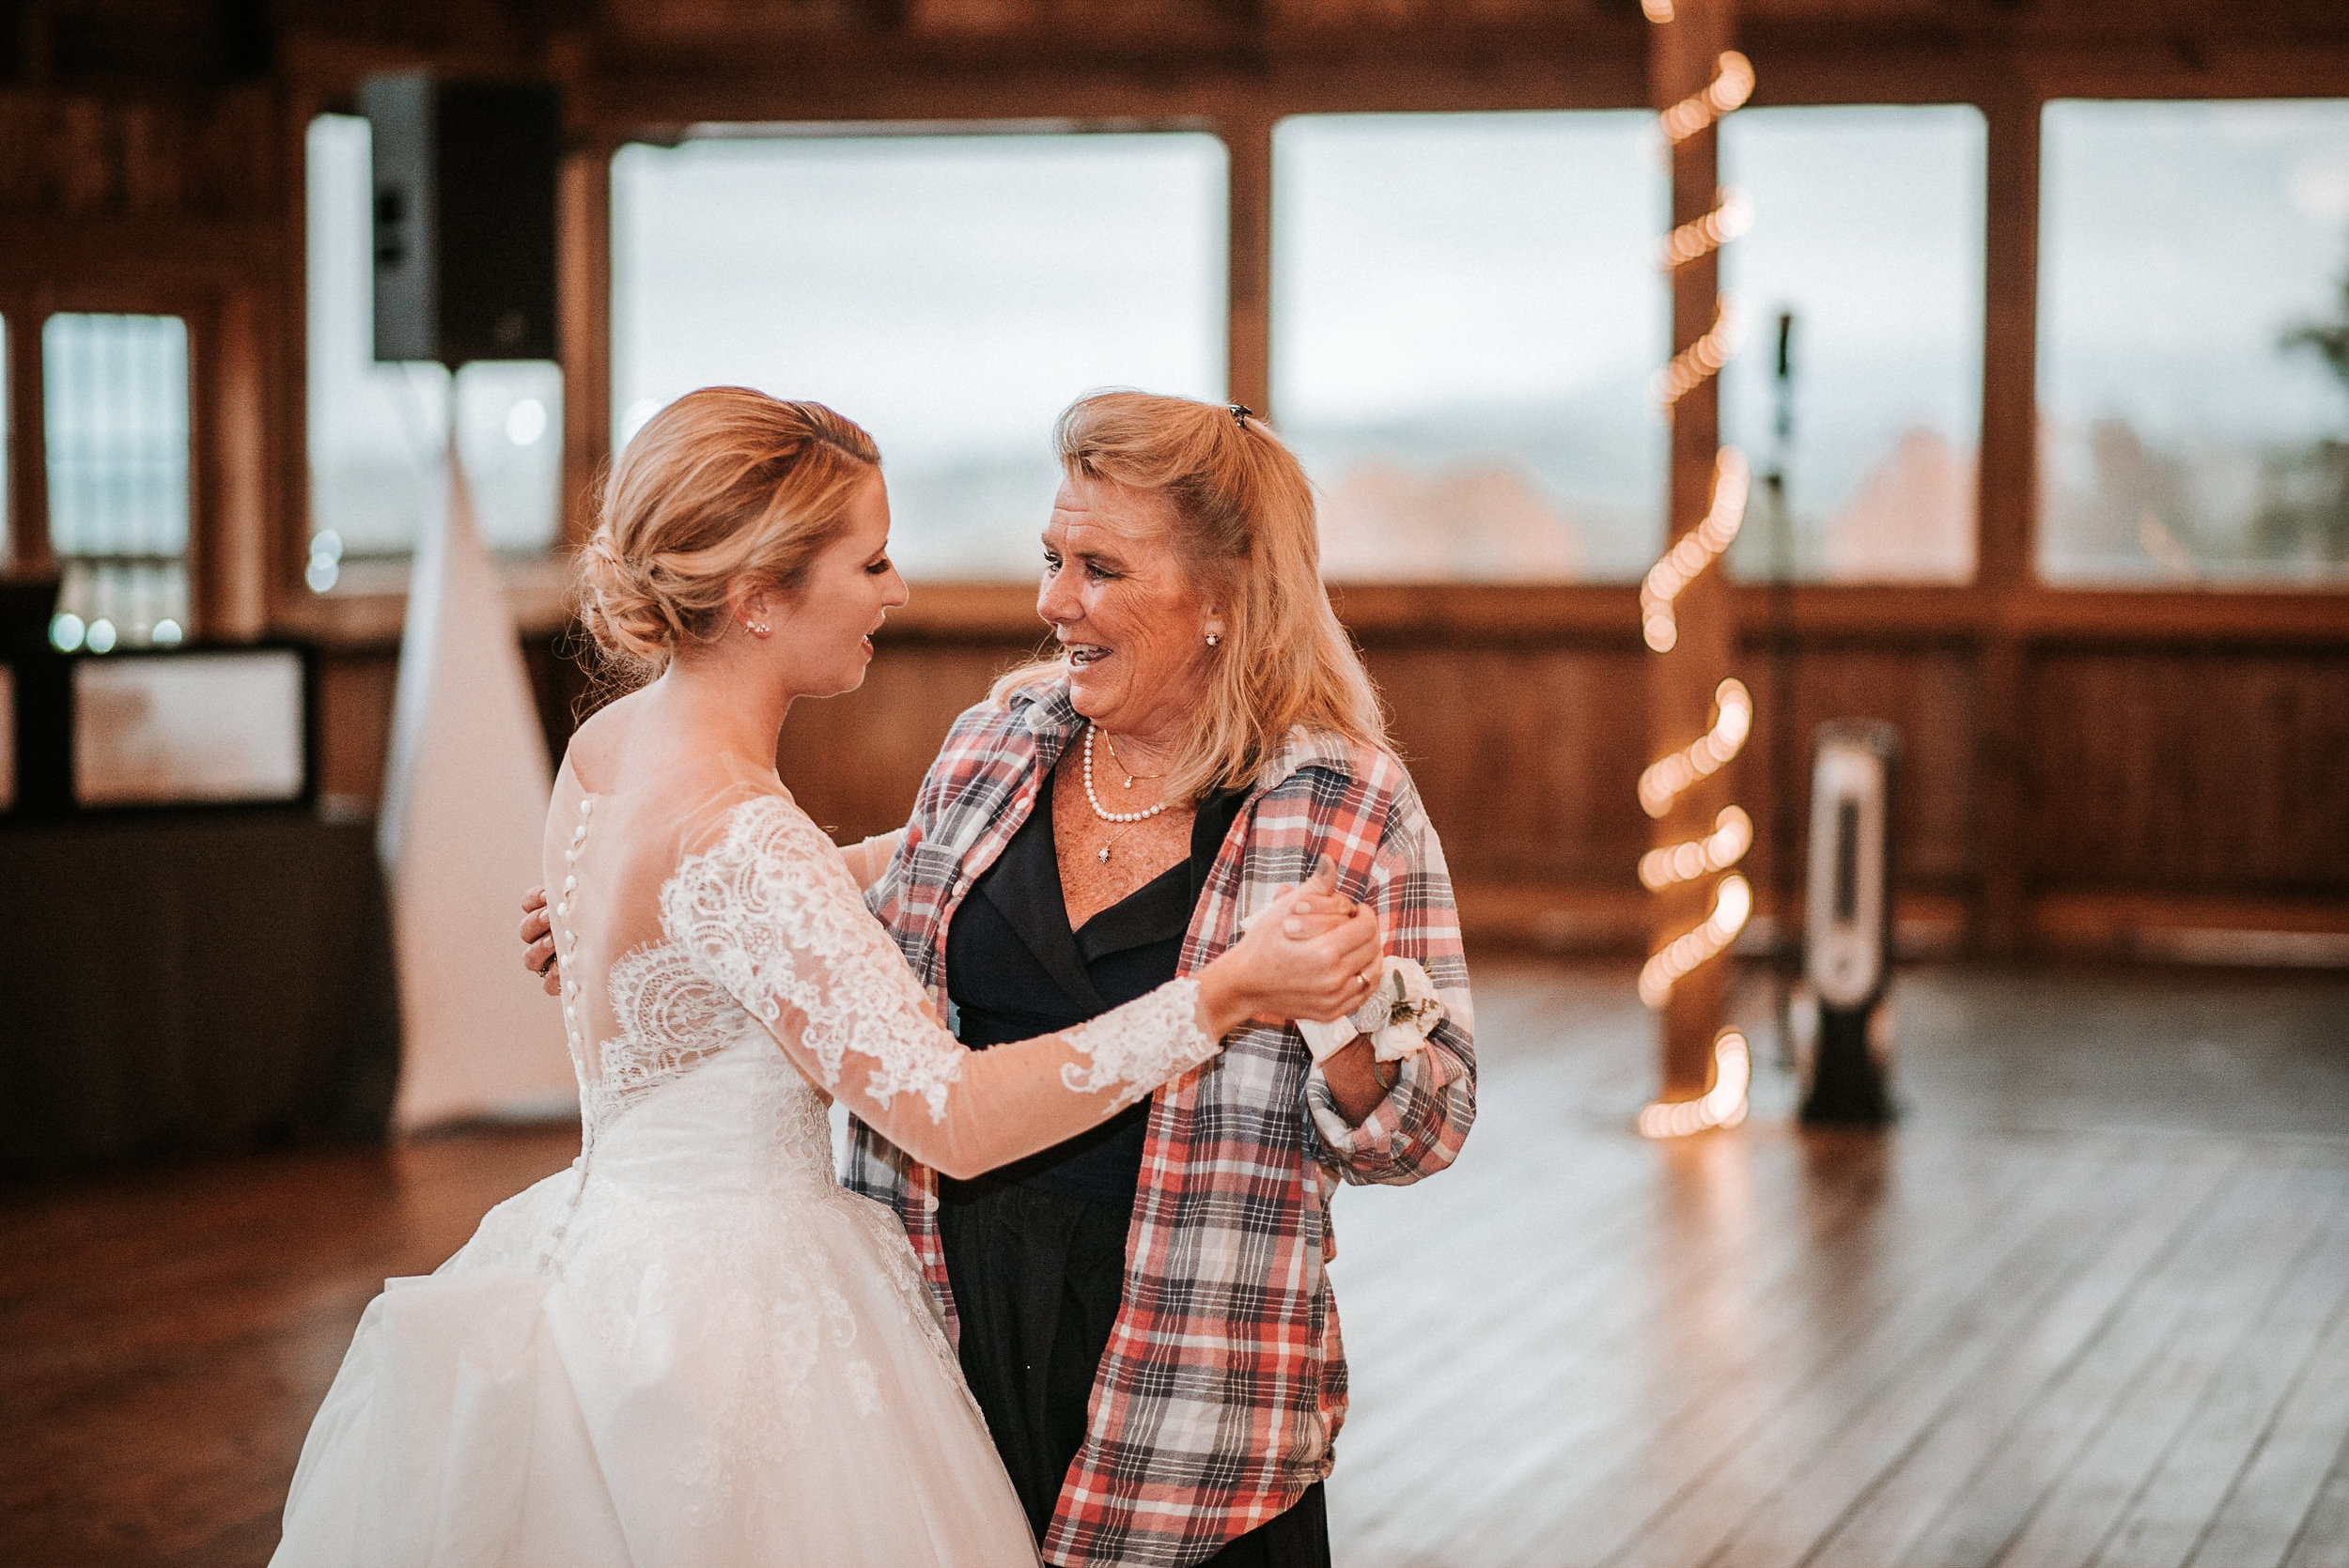 Bride and mother dancing at wedding